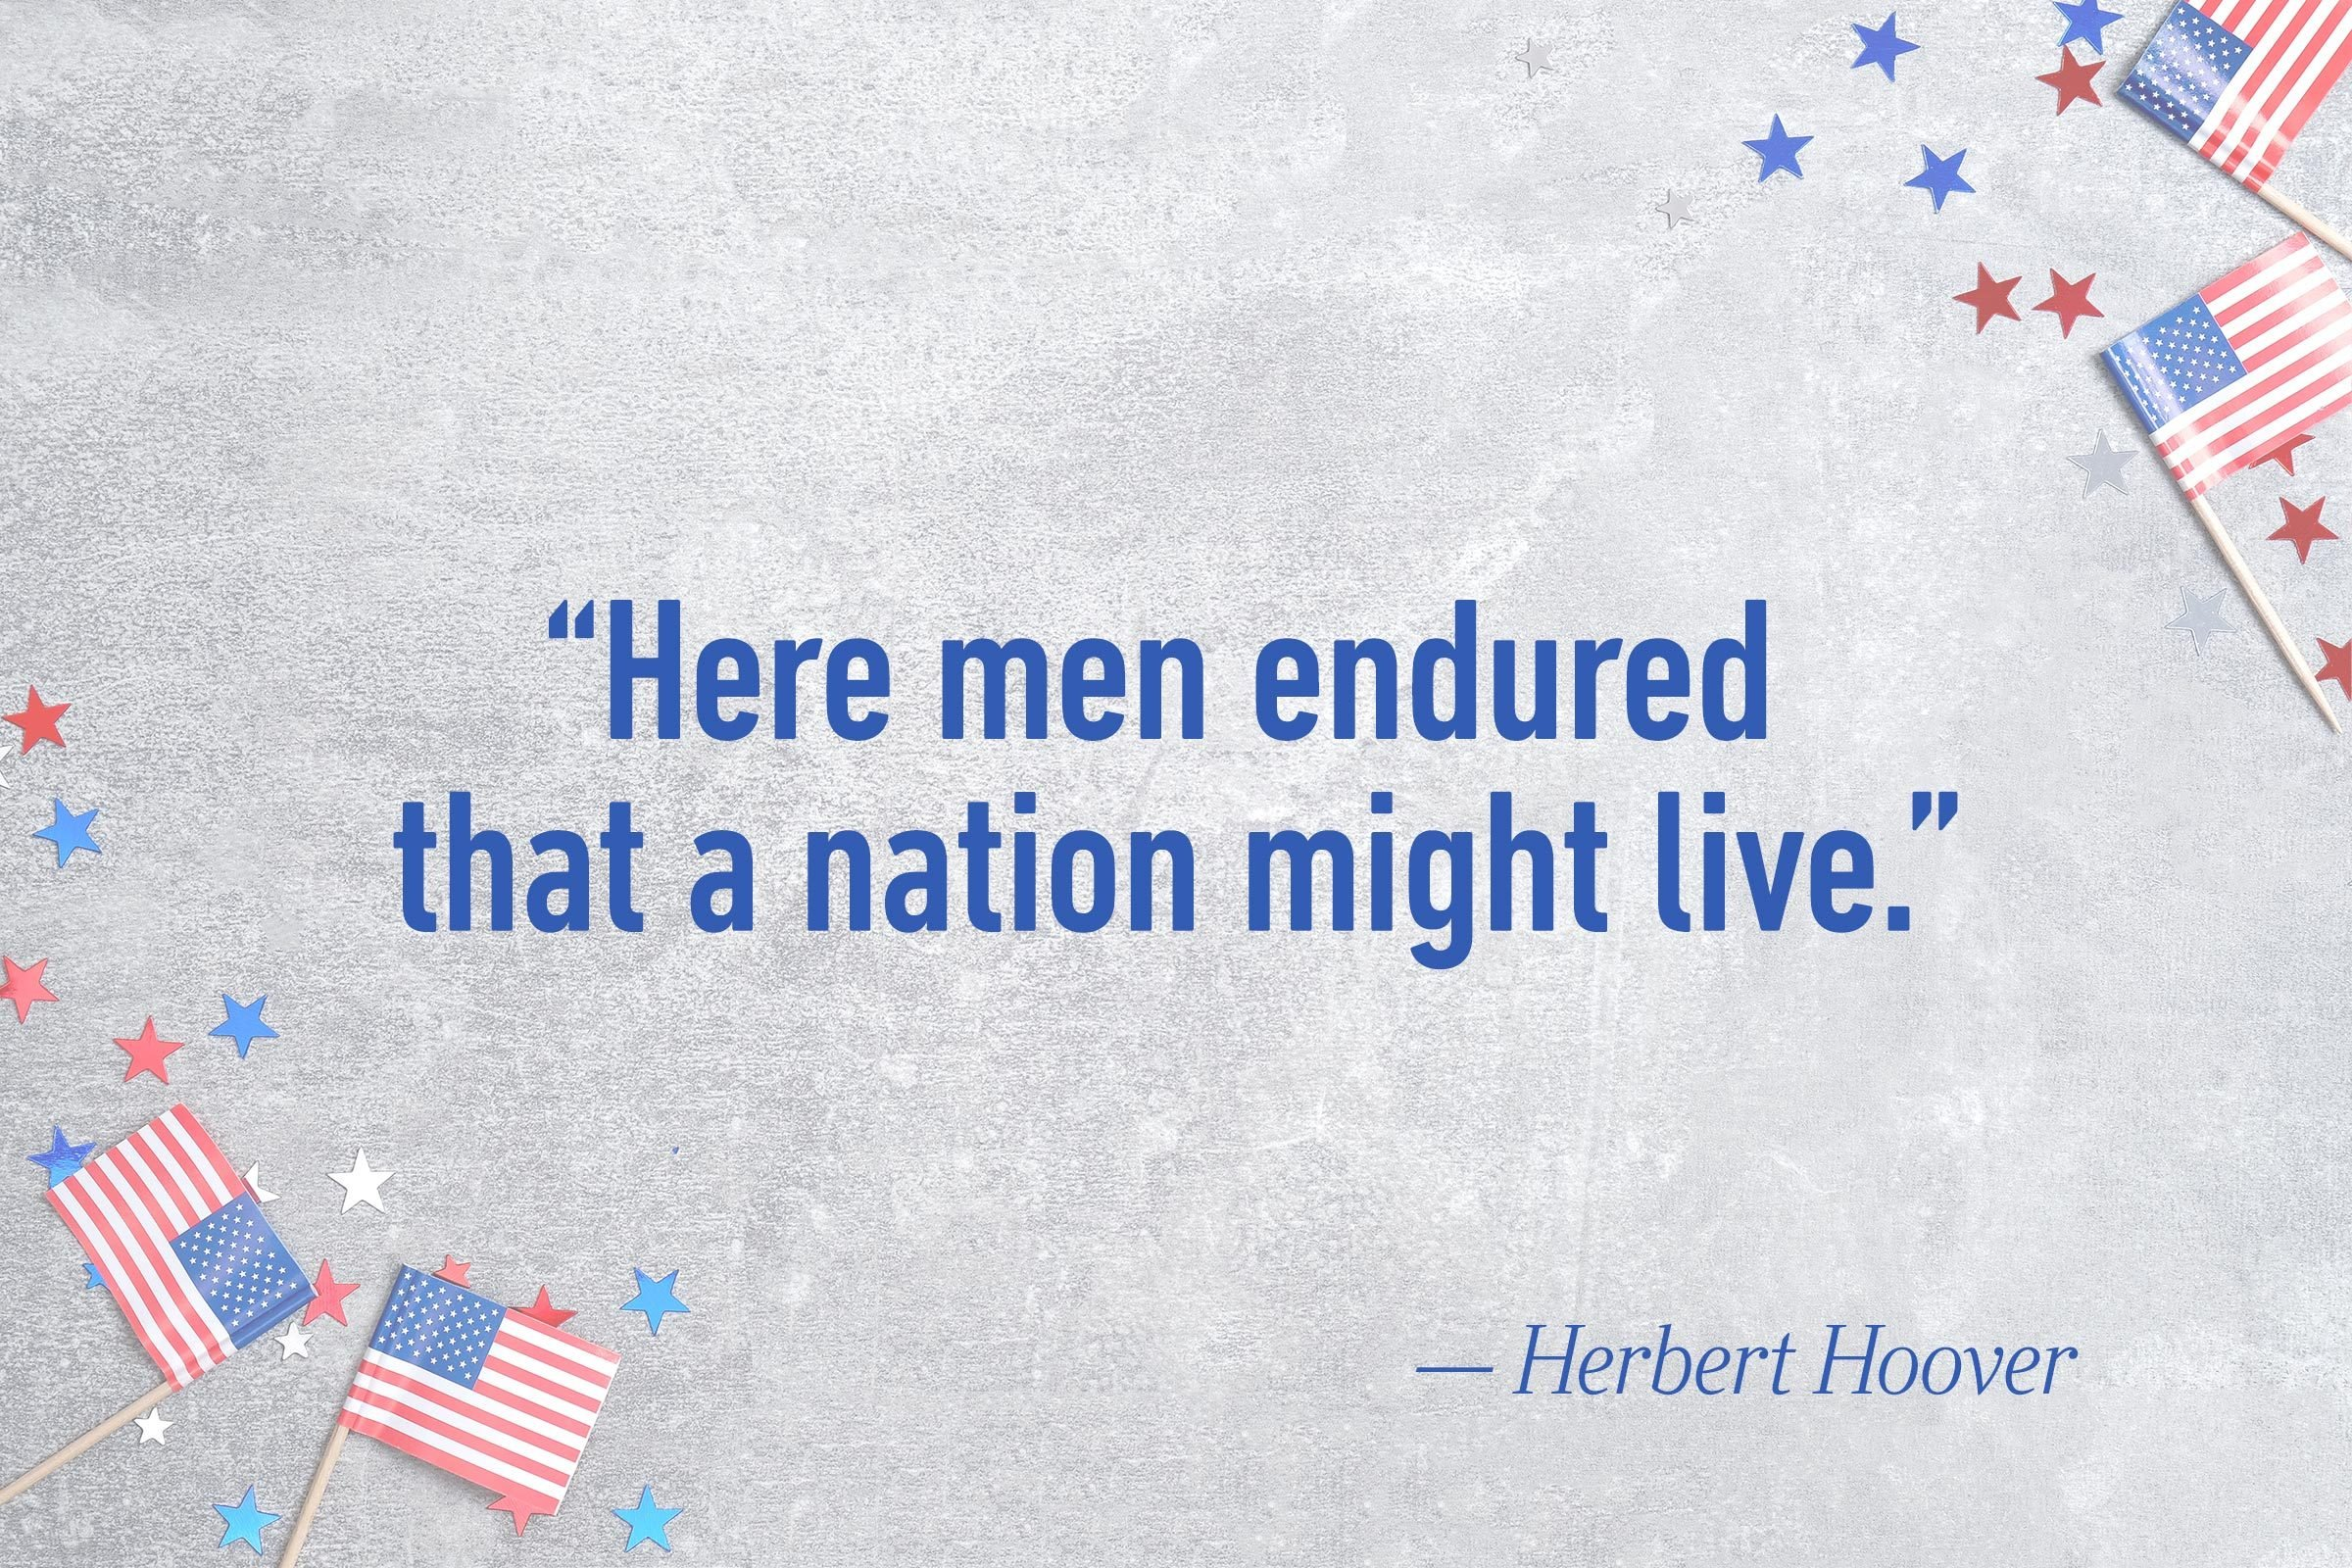 """Here men endured that a nation might live.""—Herbert Hoover"